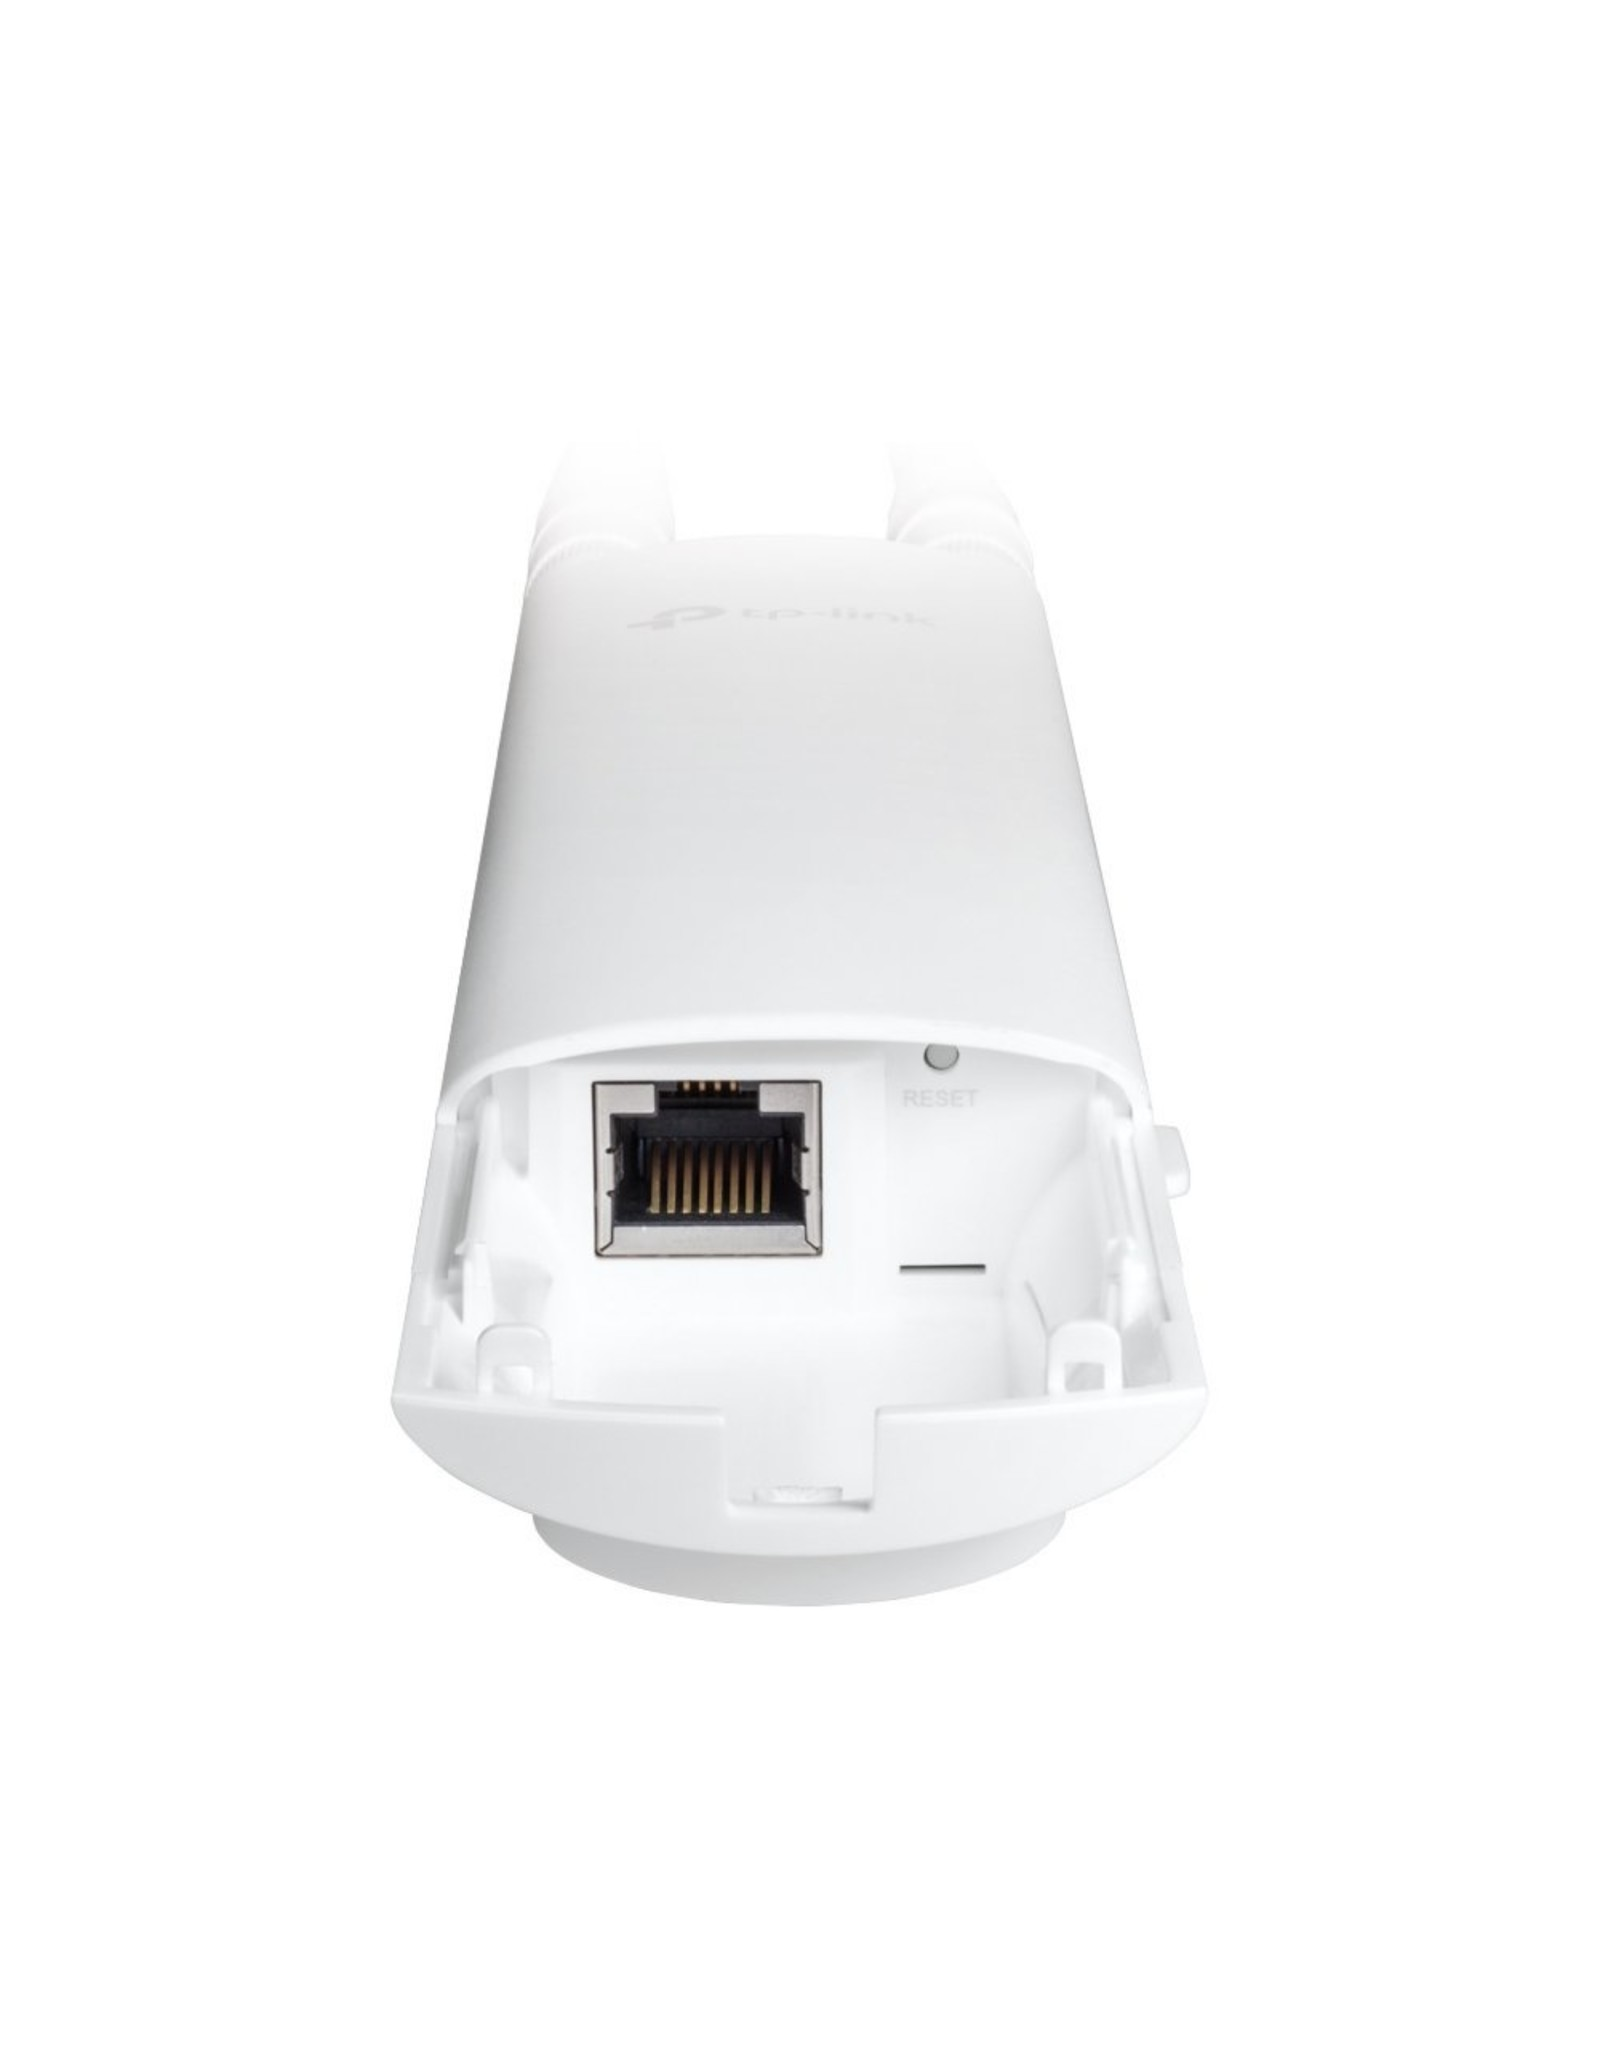 TP-Link EAP225-Outdoor AccessPoint AC1200 / PoE